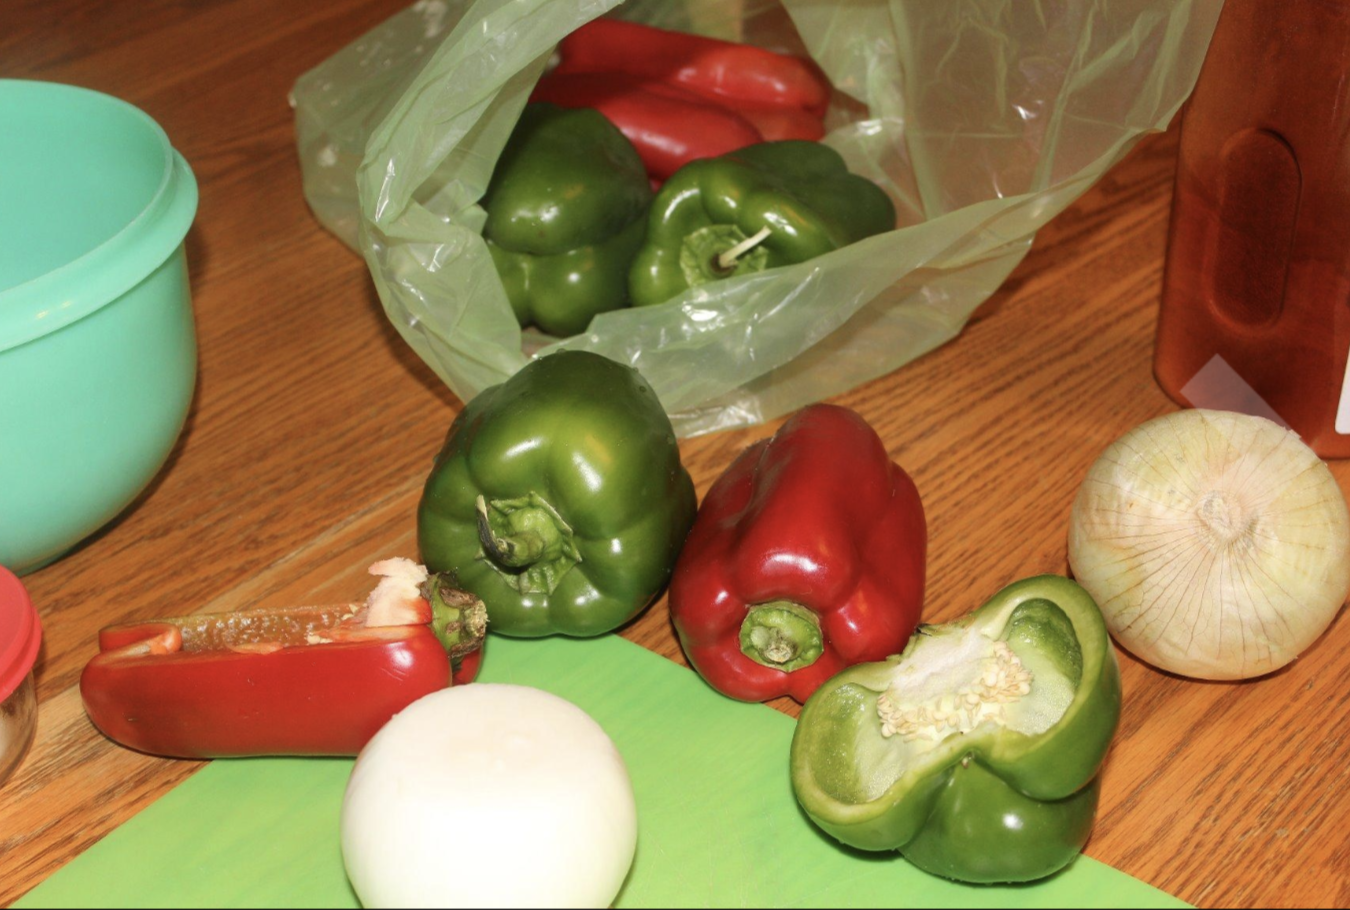 A produce saving bag with peppers inside of it